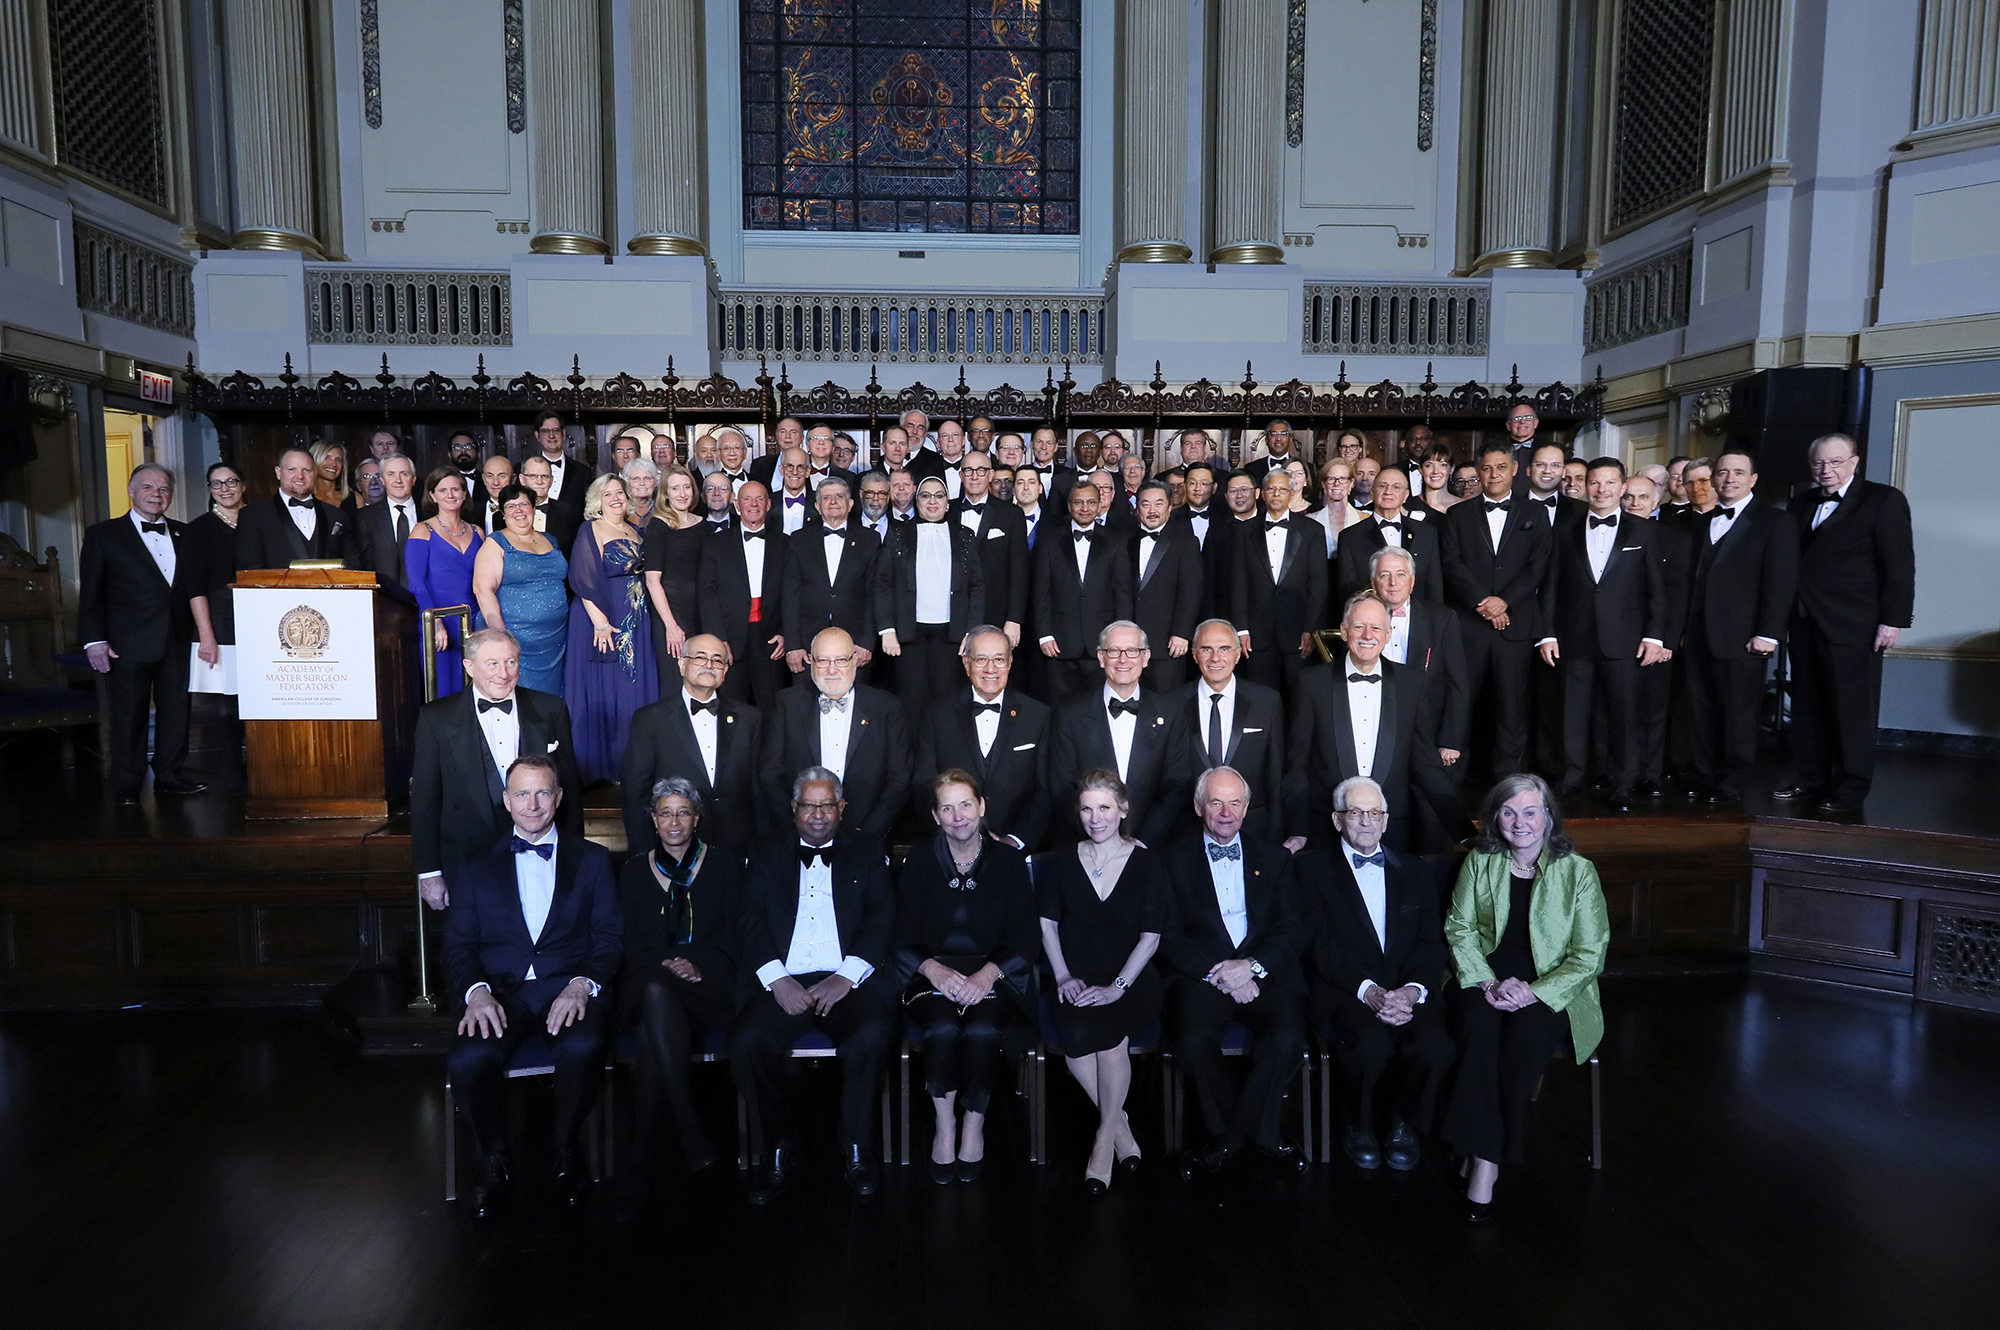 Photo of the 2019 class of Inductees of the ACS Academy of Master Surgeon Educators